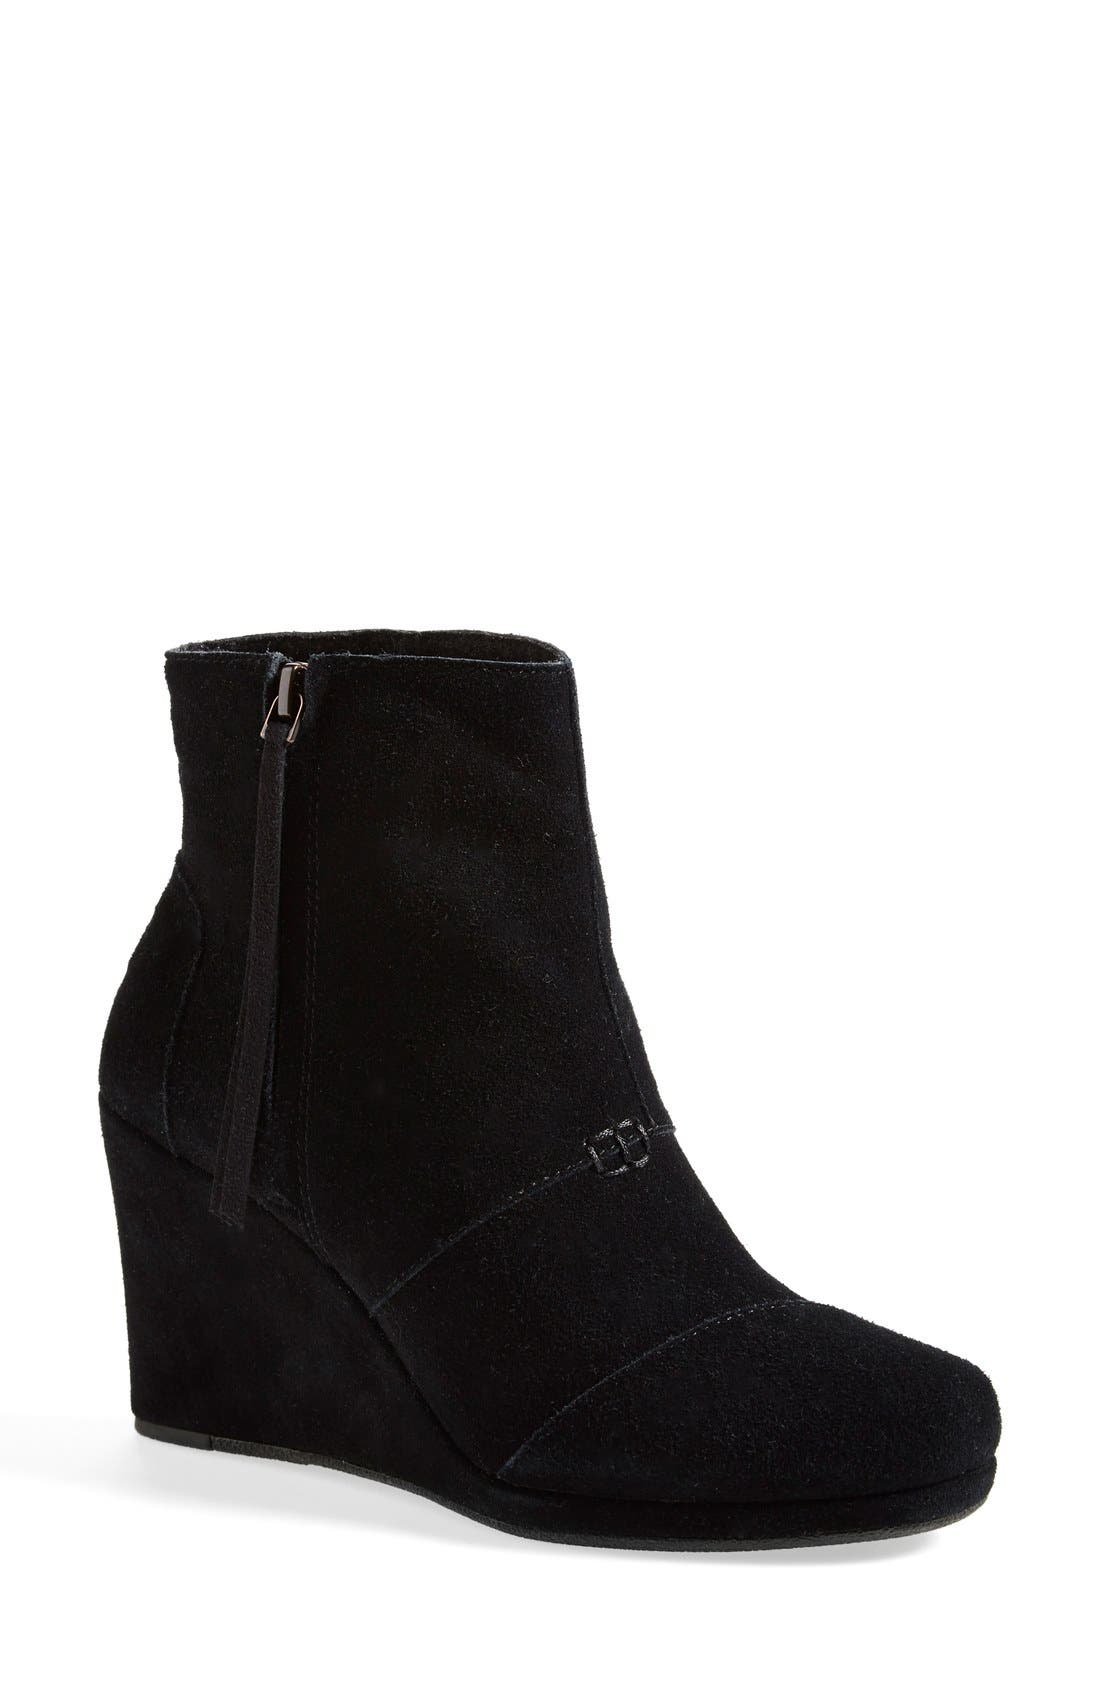 TOMS 'Desert' Wedge High Bootie (Women)